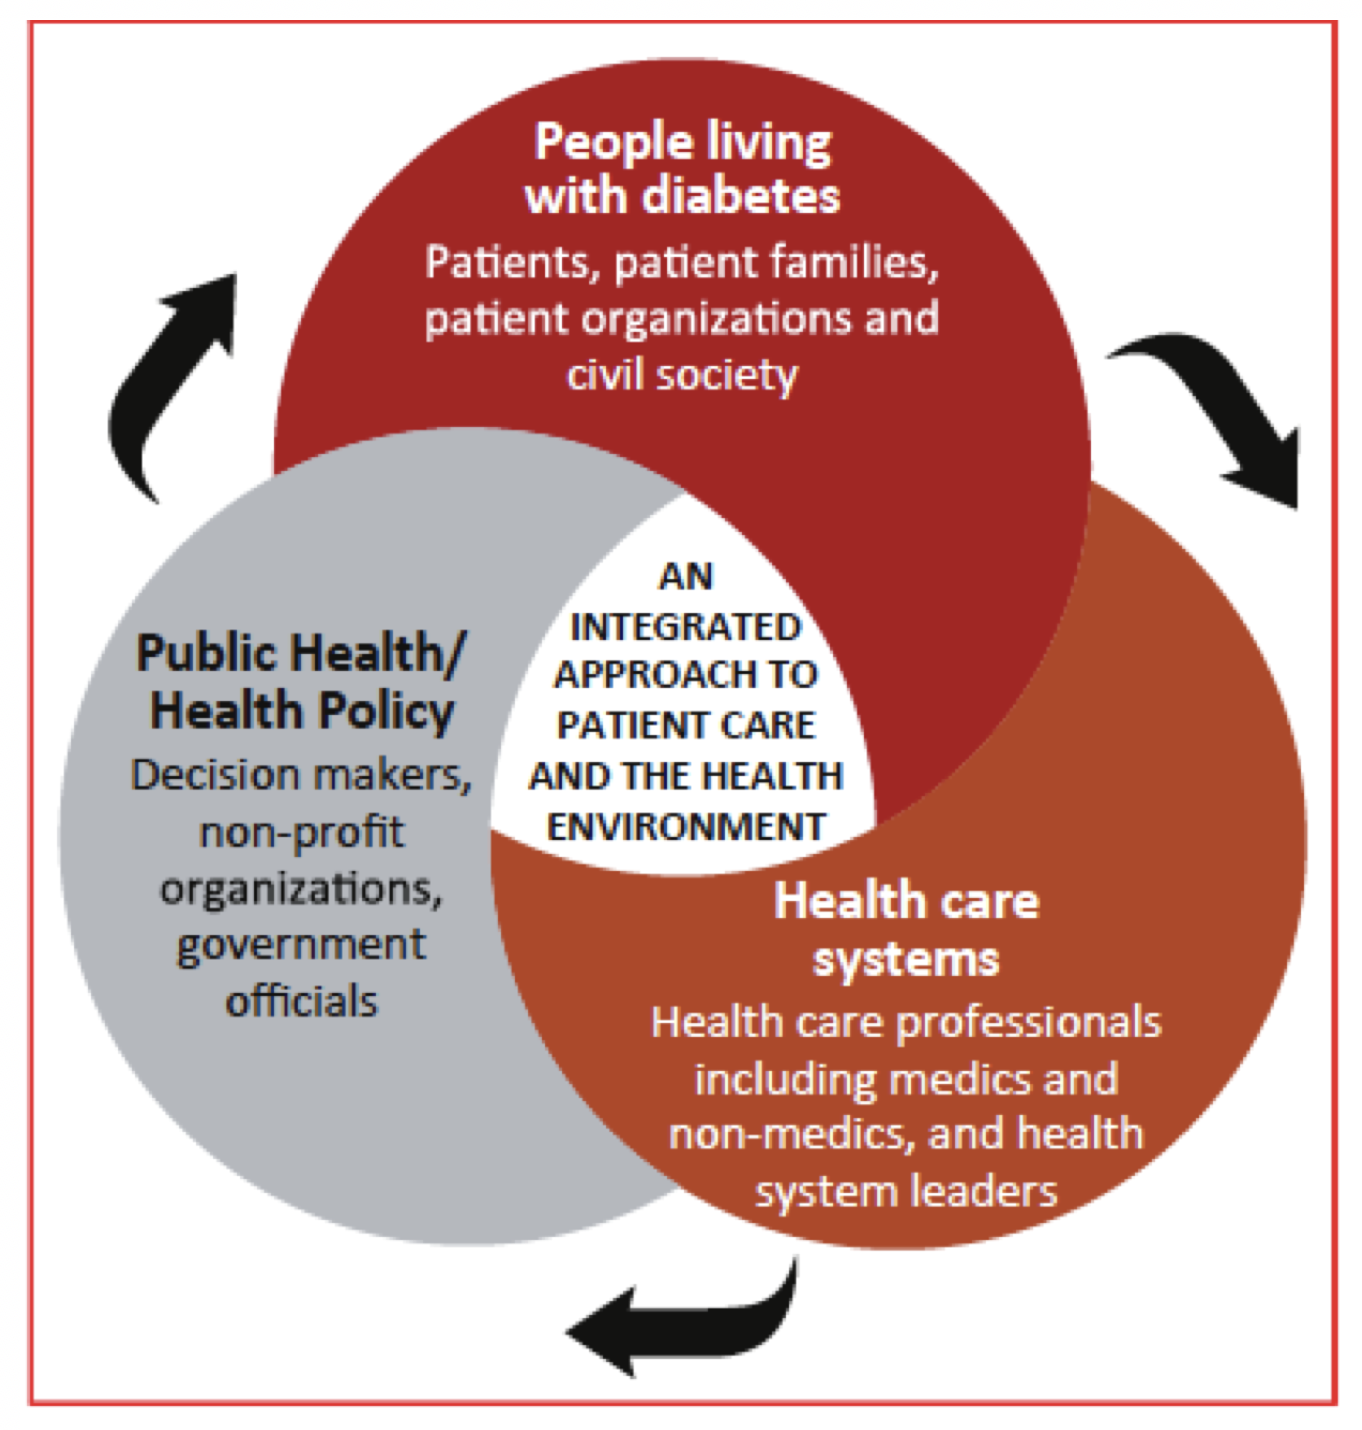 An integrated approach to healthcare